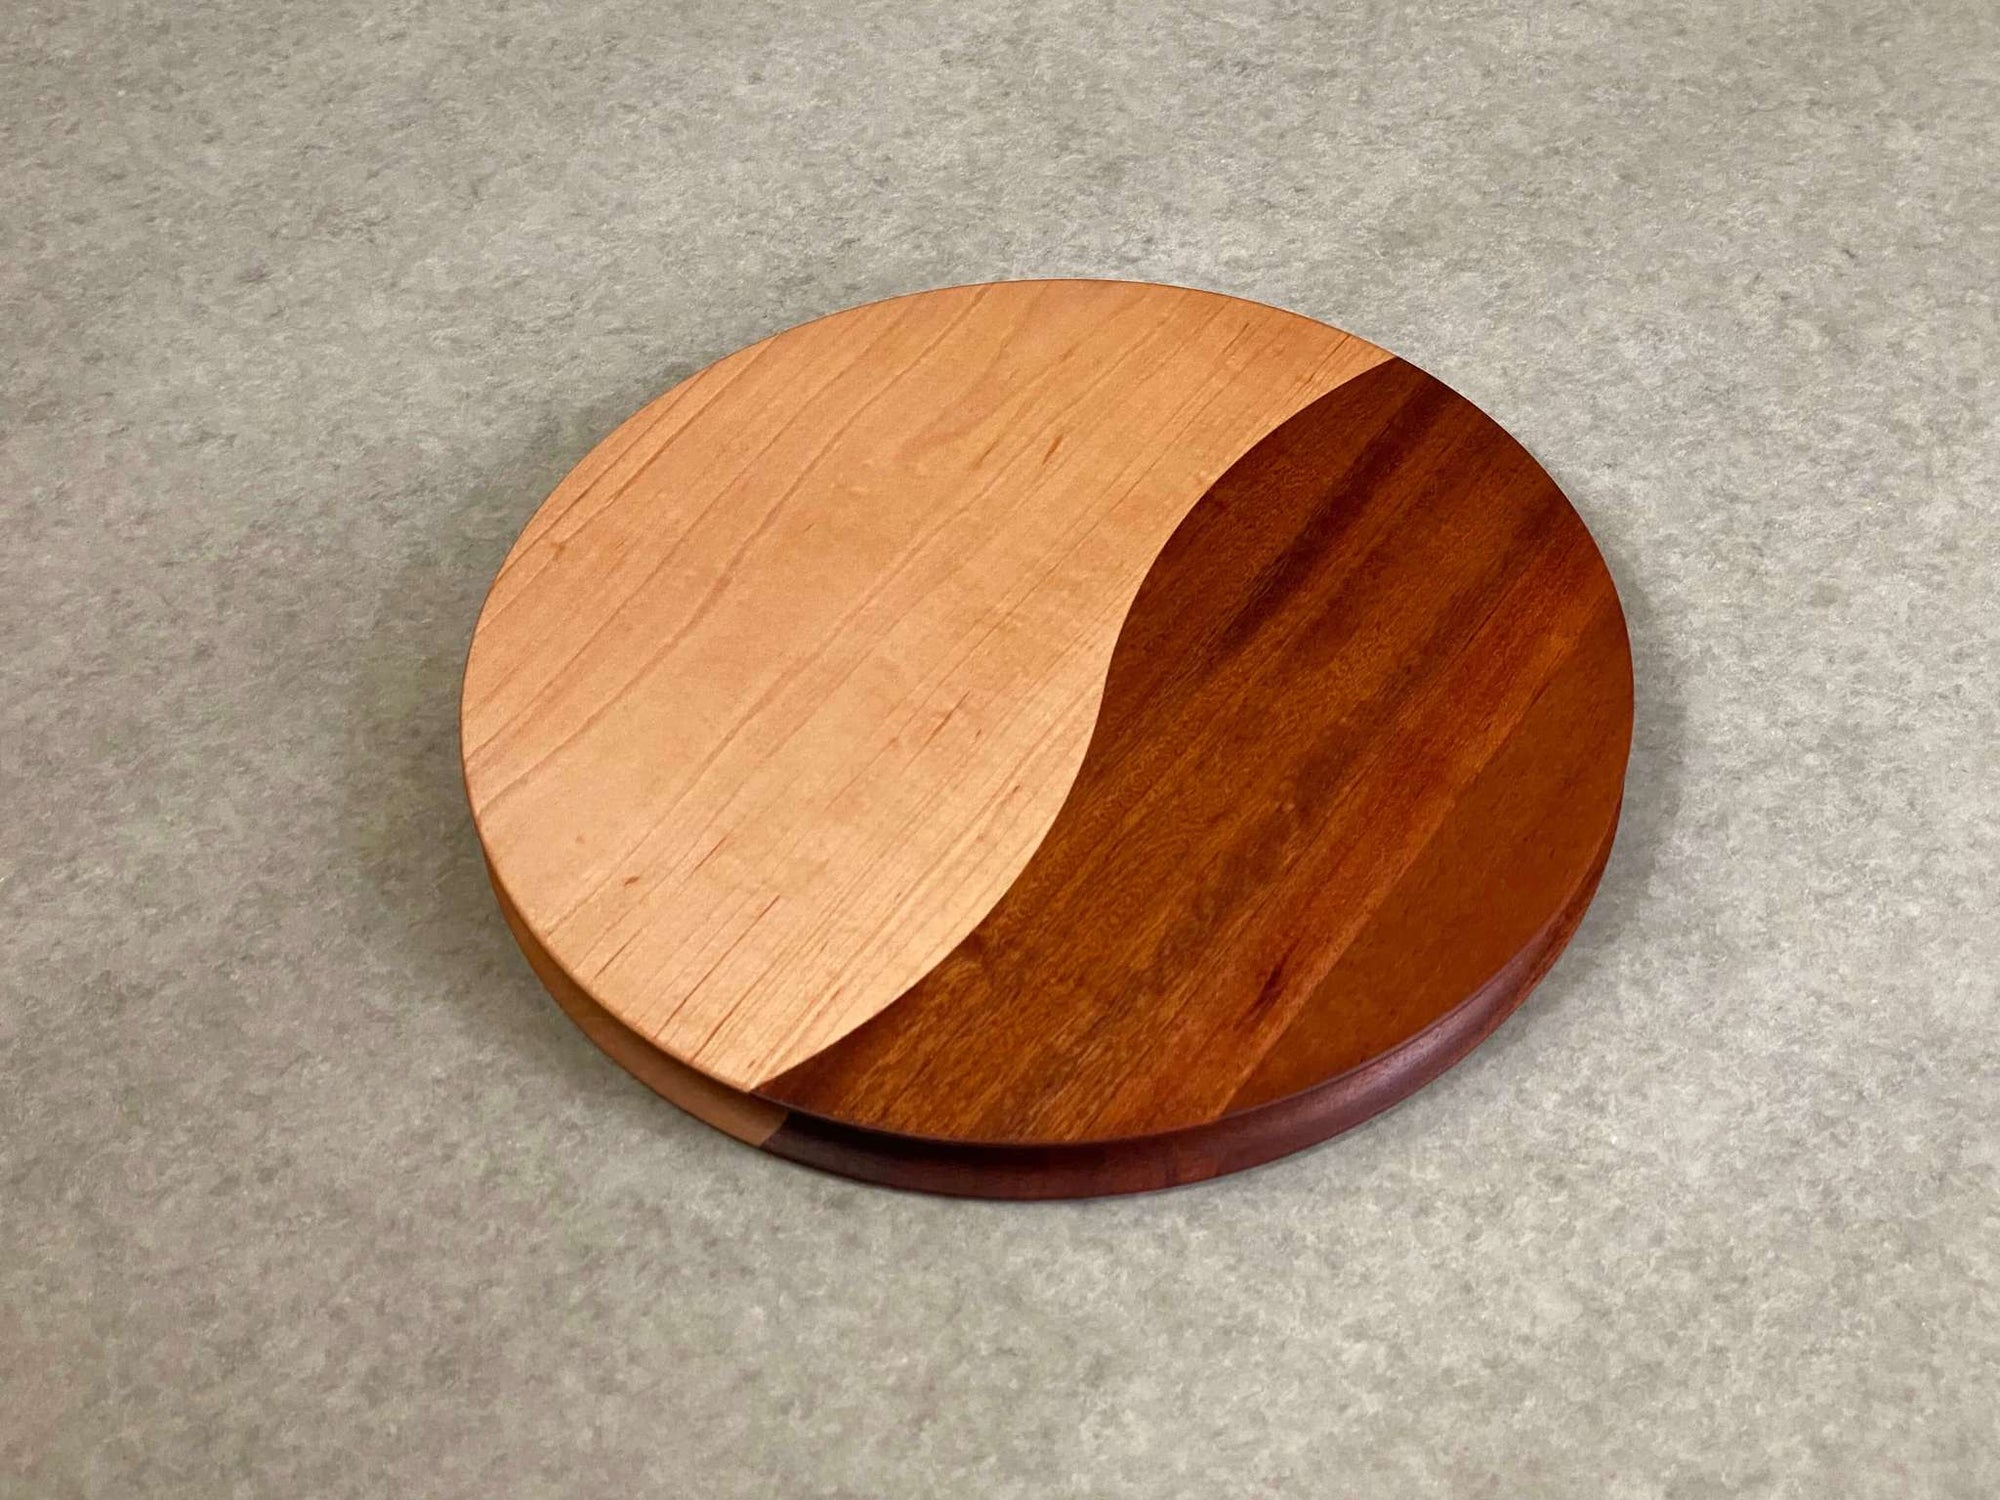 A round cutting and serving board made of part walnut and part mahogany with an off center curving joint. Sculpted edges provide a nice detail.